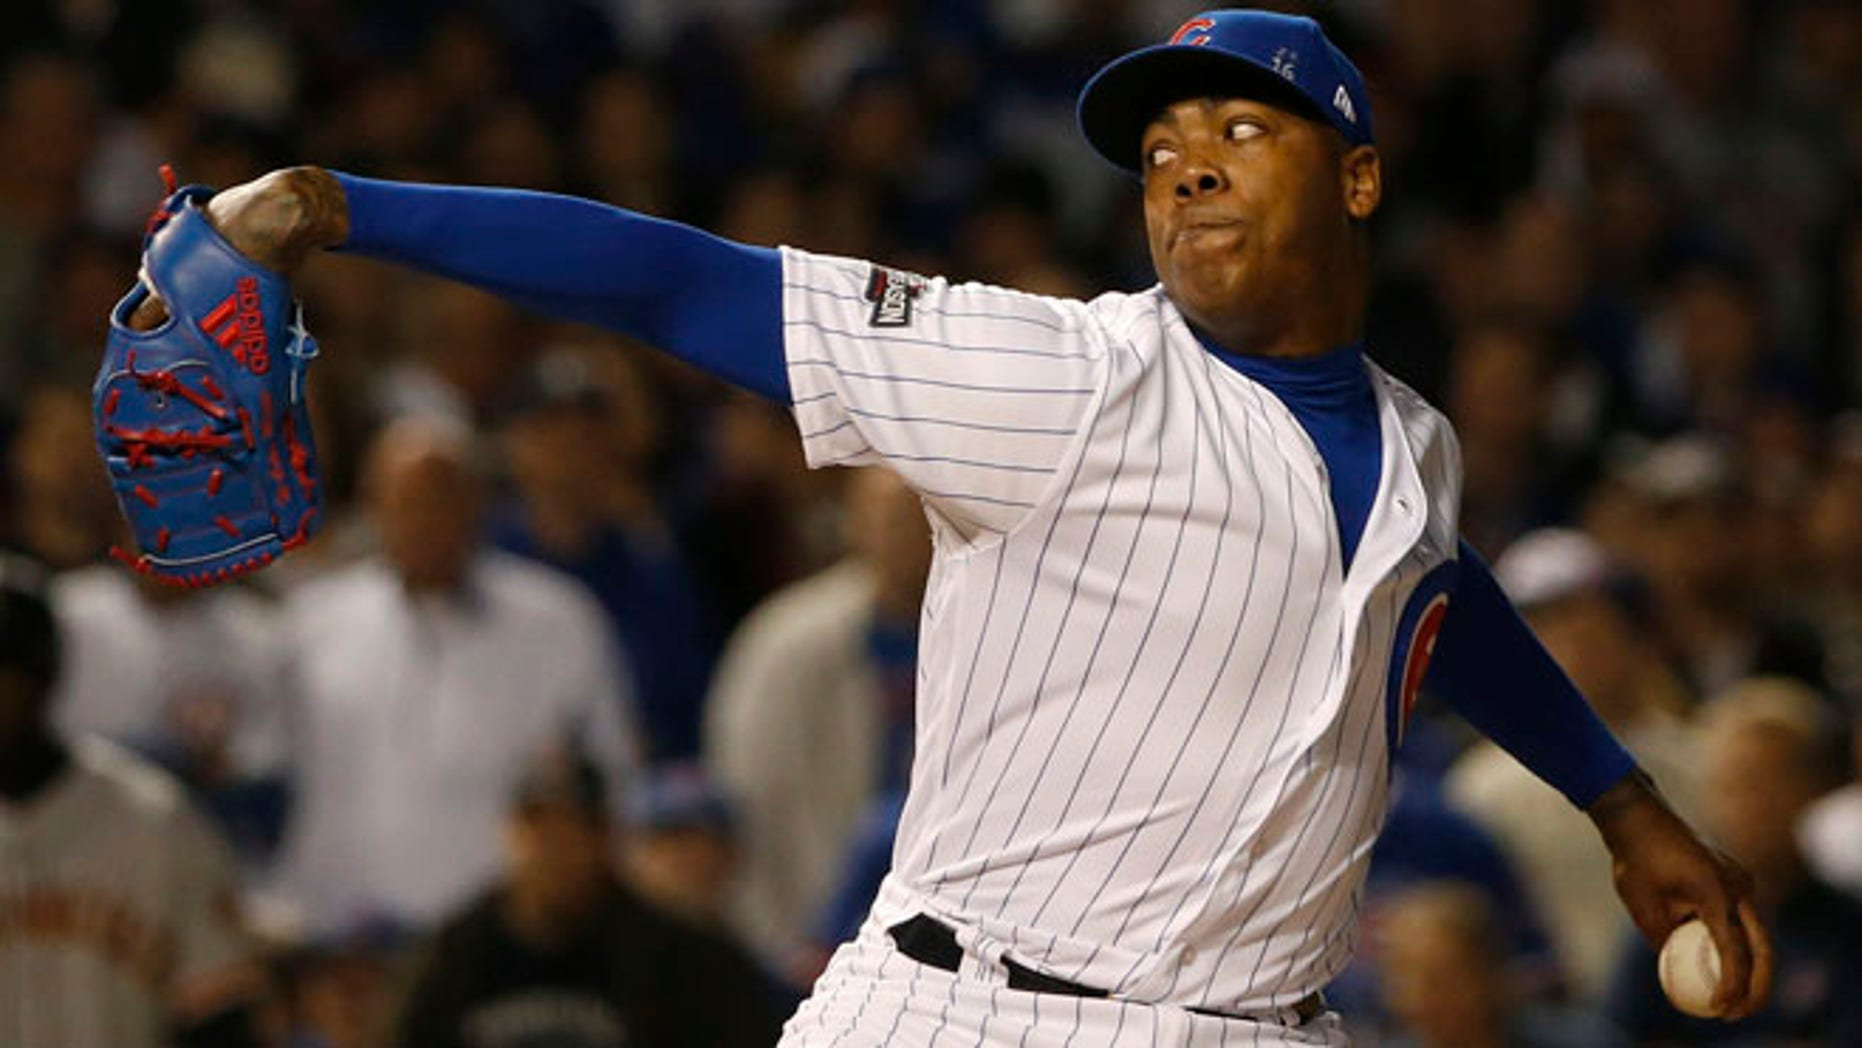 Chicago Cubs relief pitcher Aroldis Chapman (54) throws in the ninth inning of Game 2 of baseball's National League Division Series against the San Francisco Giants, Saturday, Oct. 8, 2016, in Chicago. (AP Photo/Nam Y. Huh)